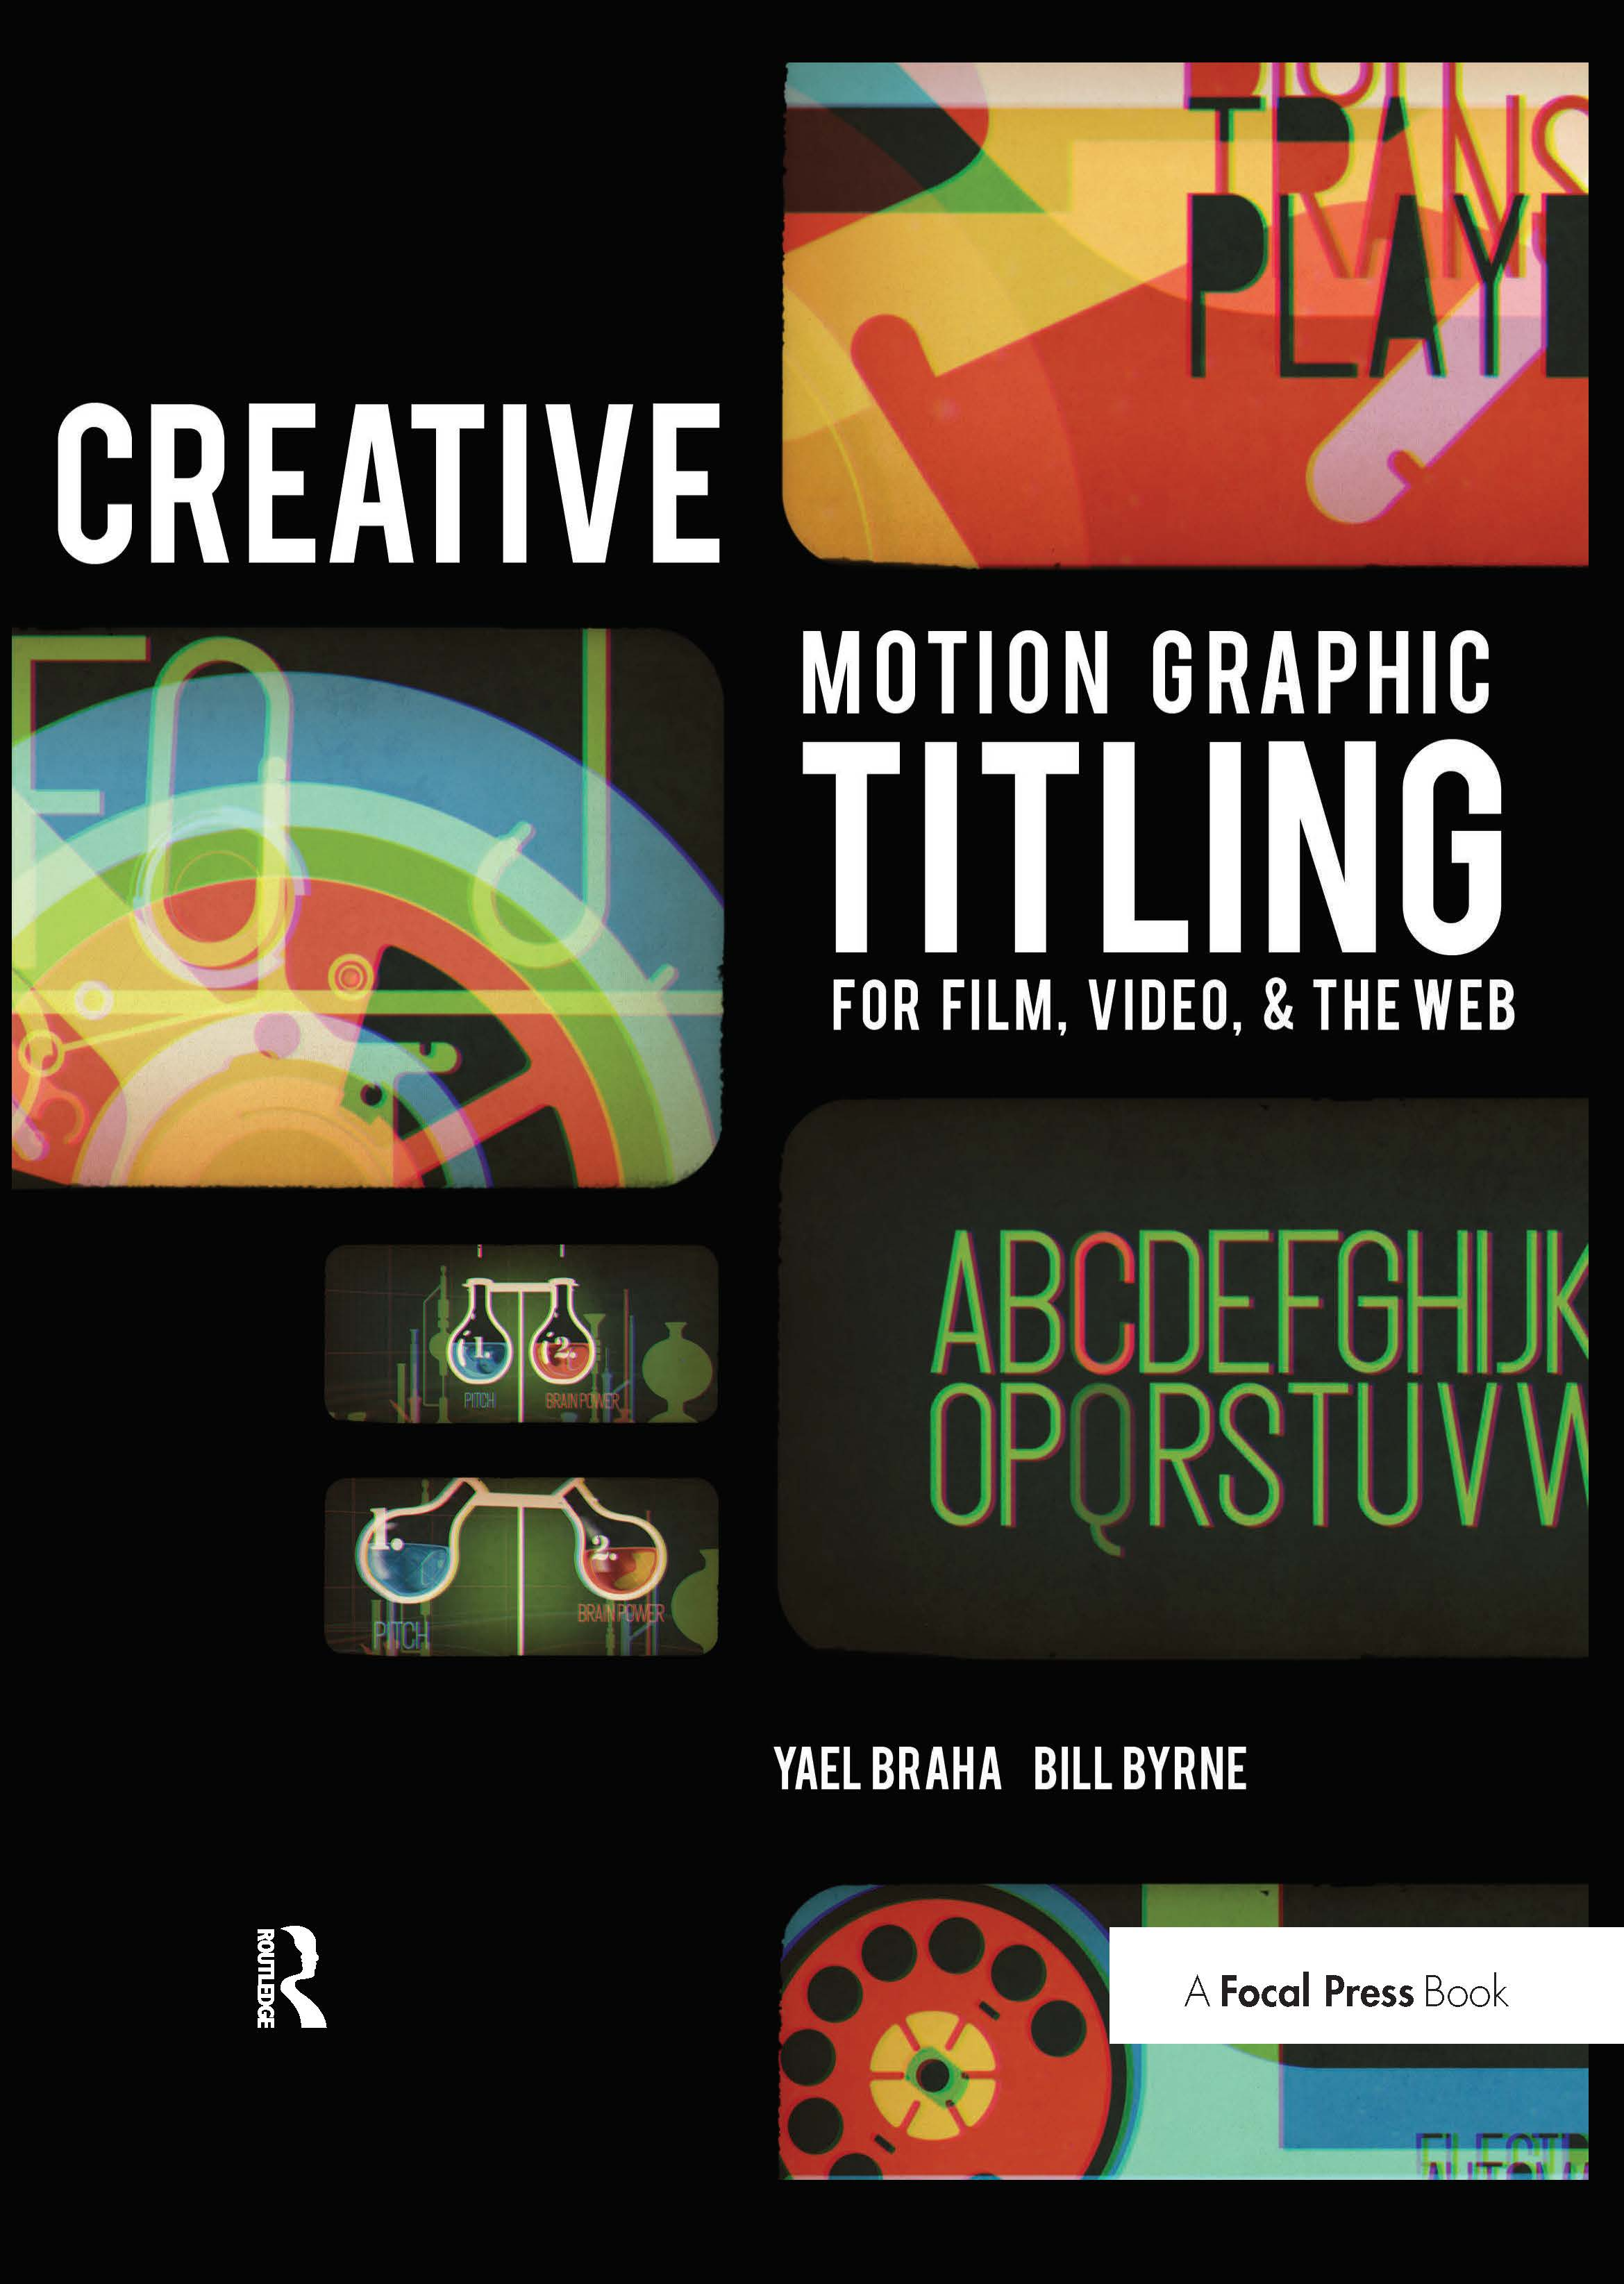 Creative Motion Graphic Titling for Film, Video, and the Web: Dynamic Motion Graphic Title Design book cover